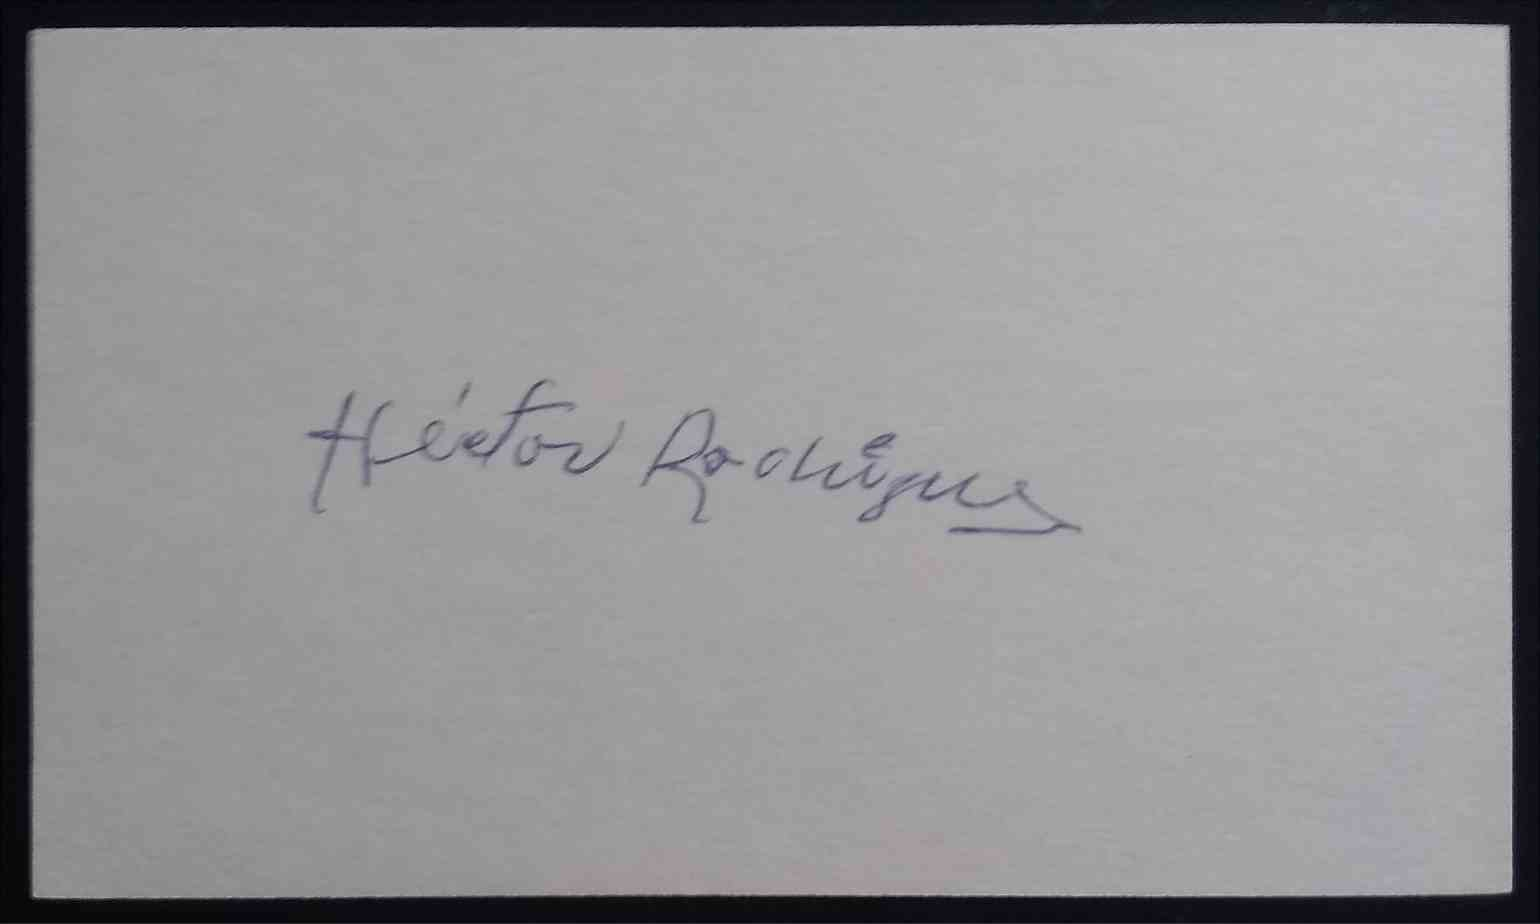 1952 3X5 Hector Rodriguez card back image